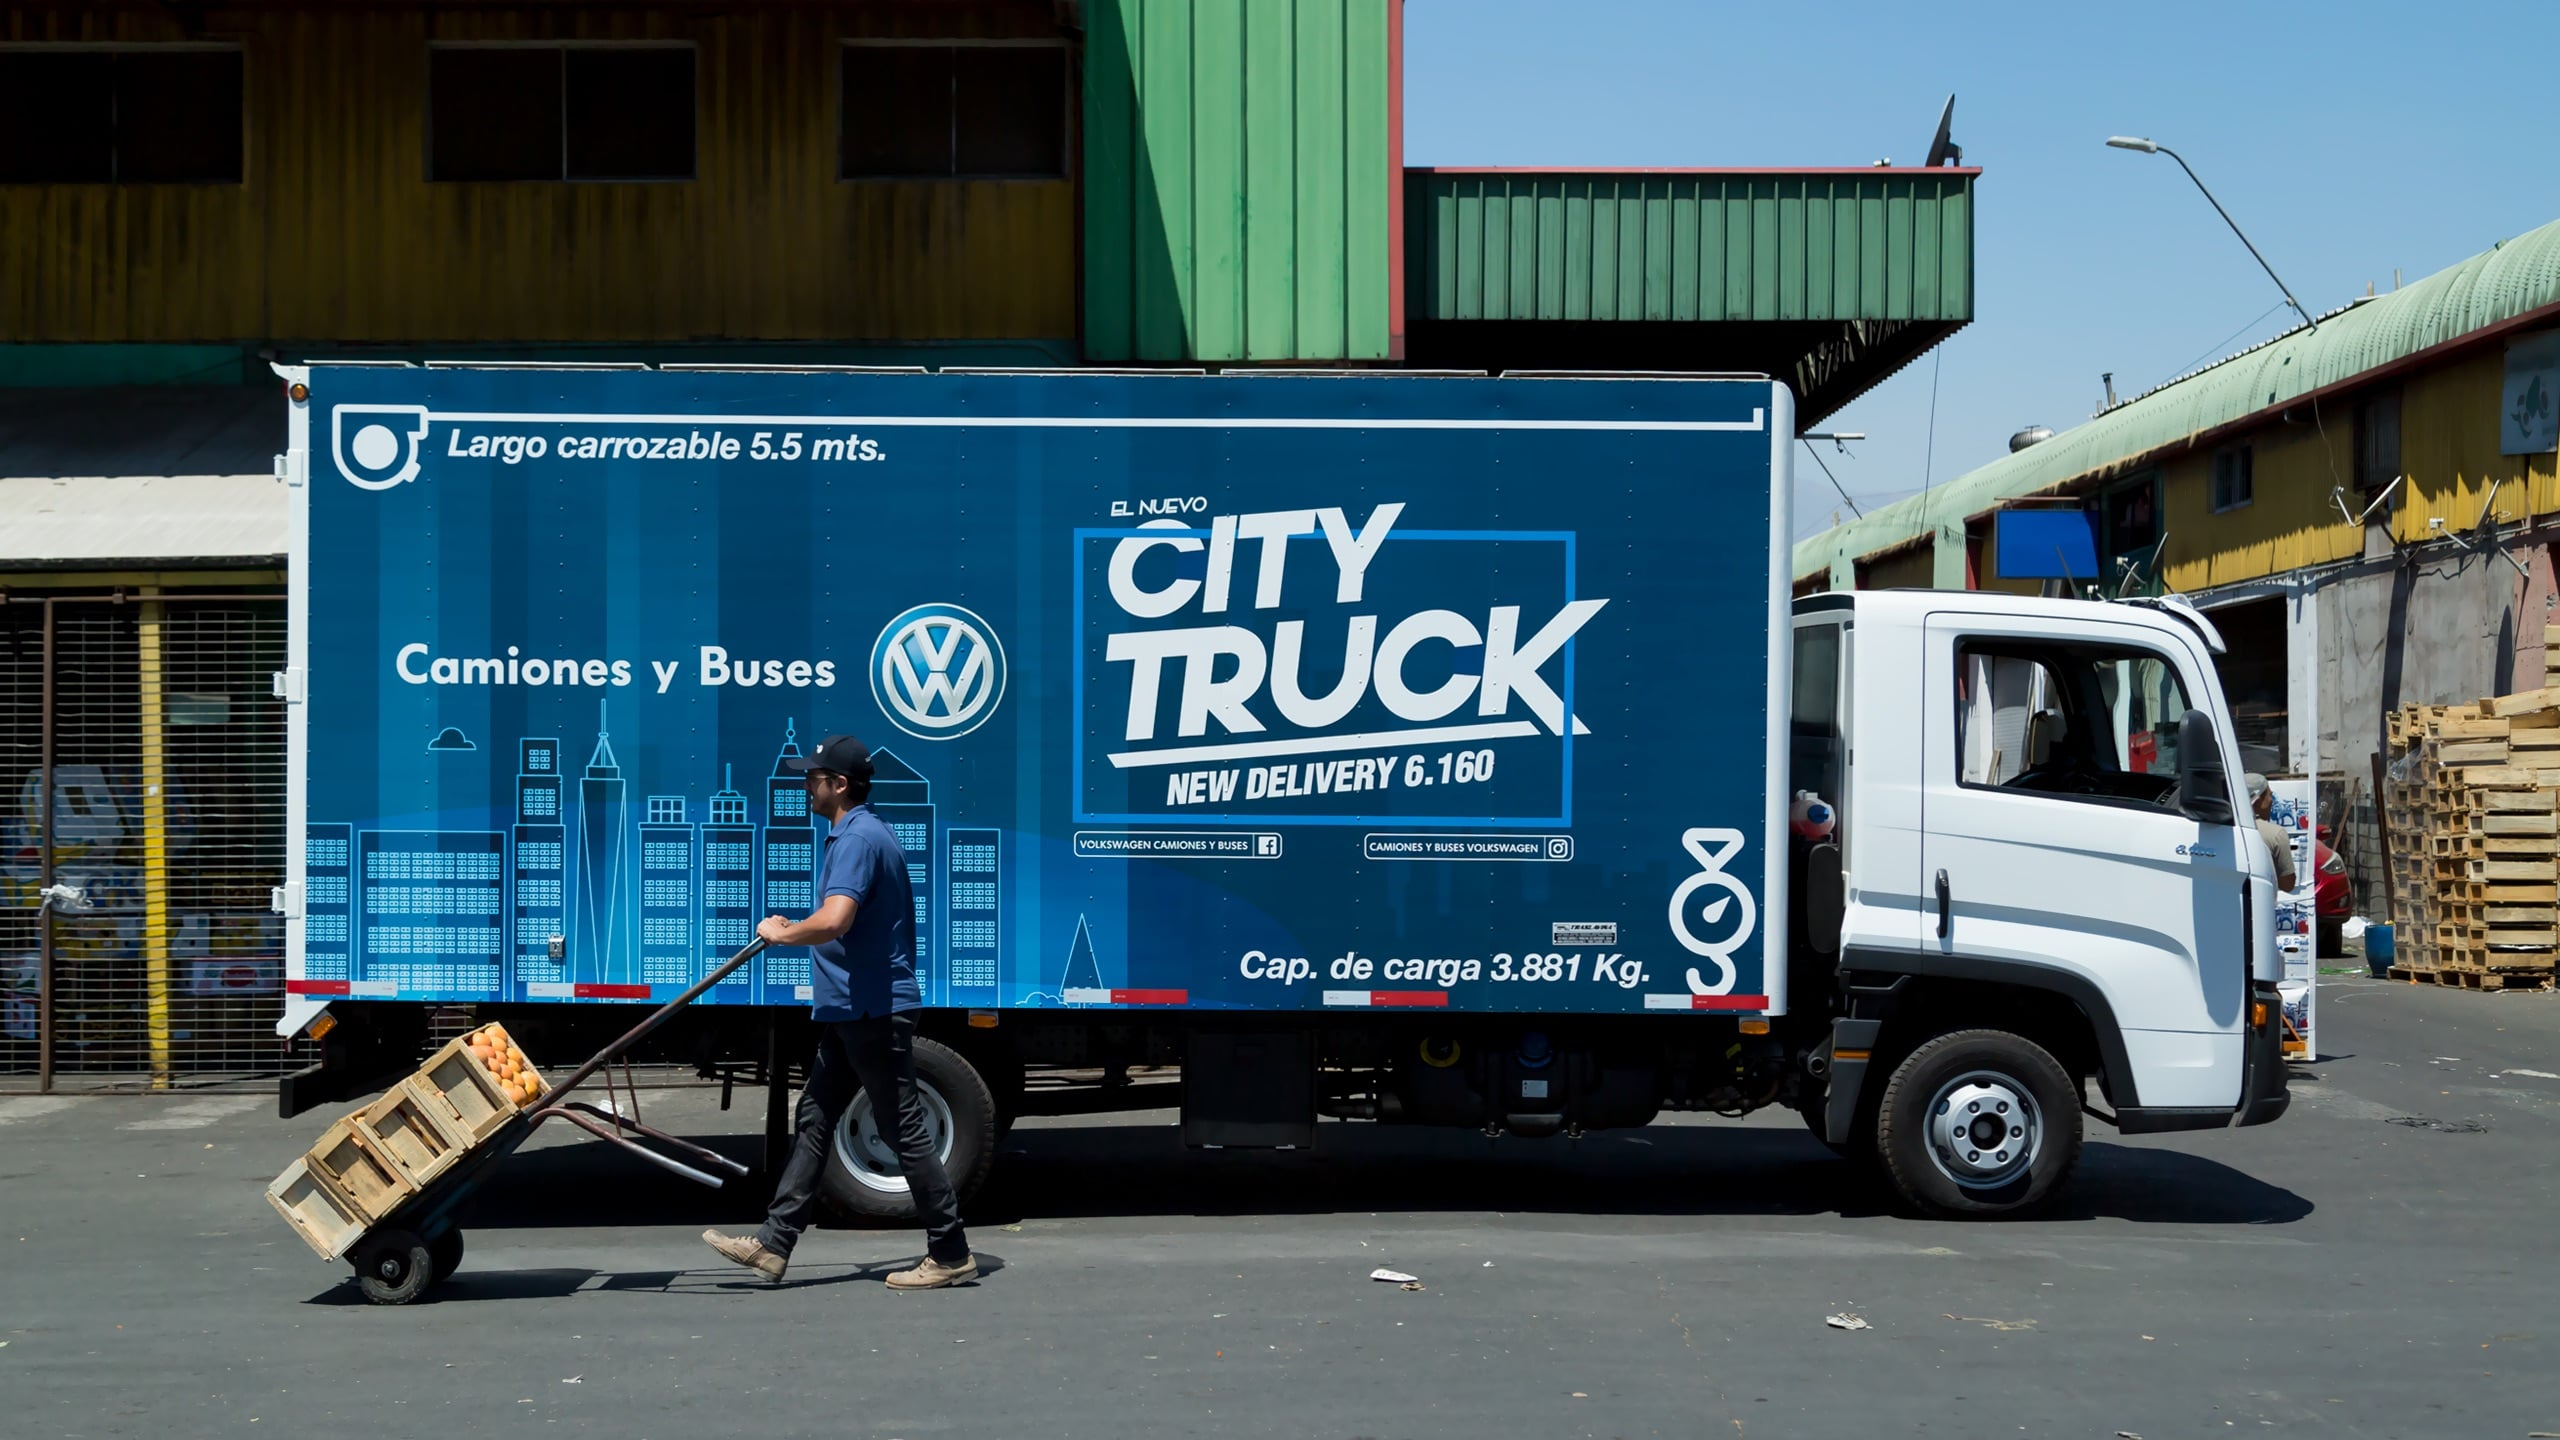 New Delivery 6.160 – City Truck